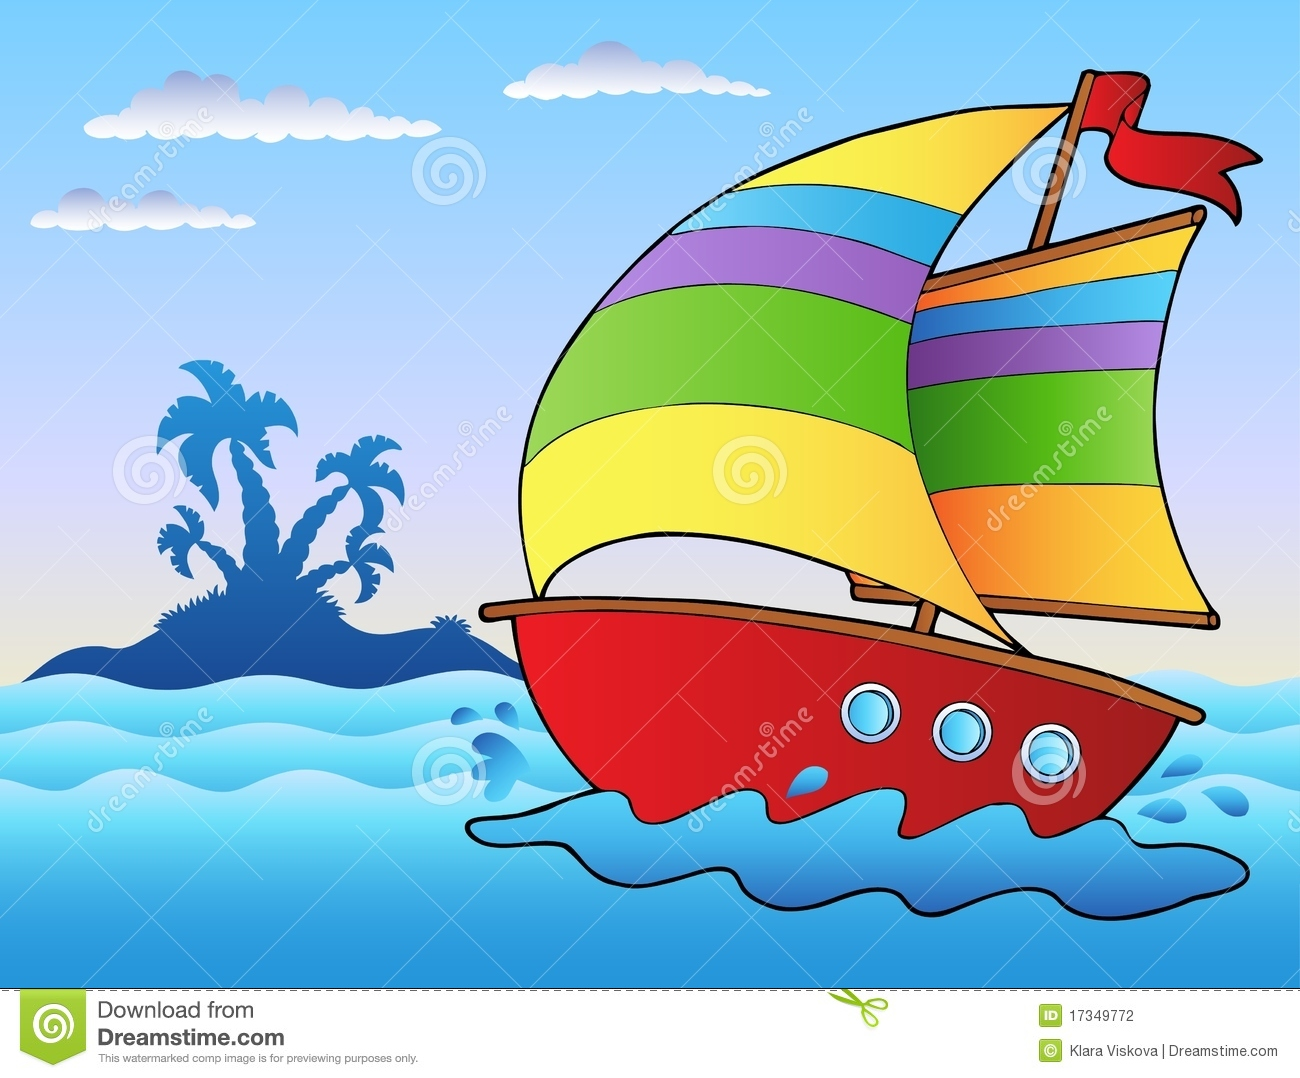 Cartoon Sailboat Near Small Island Stock Vector - Illustration of sailboat, marine: 17349772